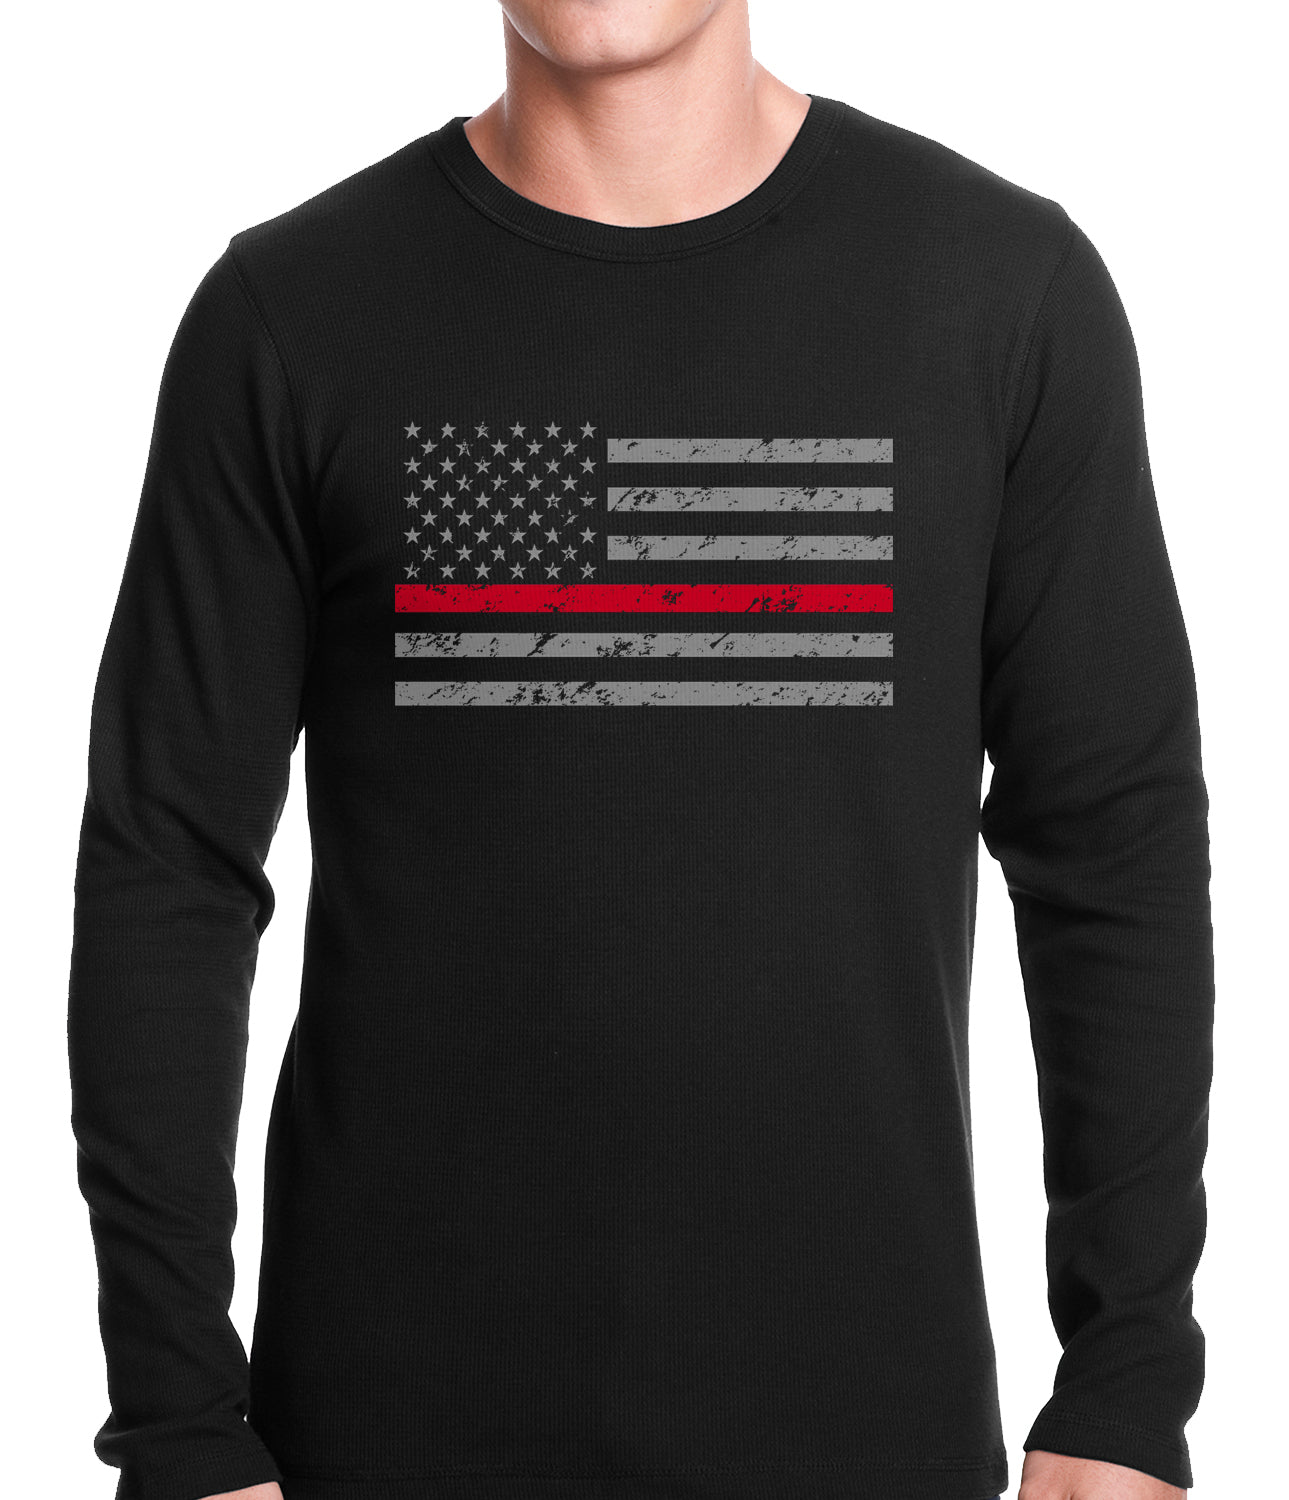 Firefighter Thin Red Line American Flag - Support Firefighter Department Horizontal Thermal Shirt